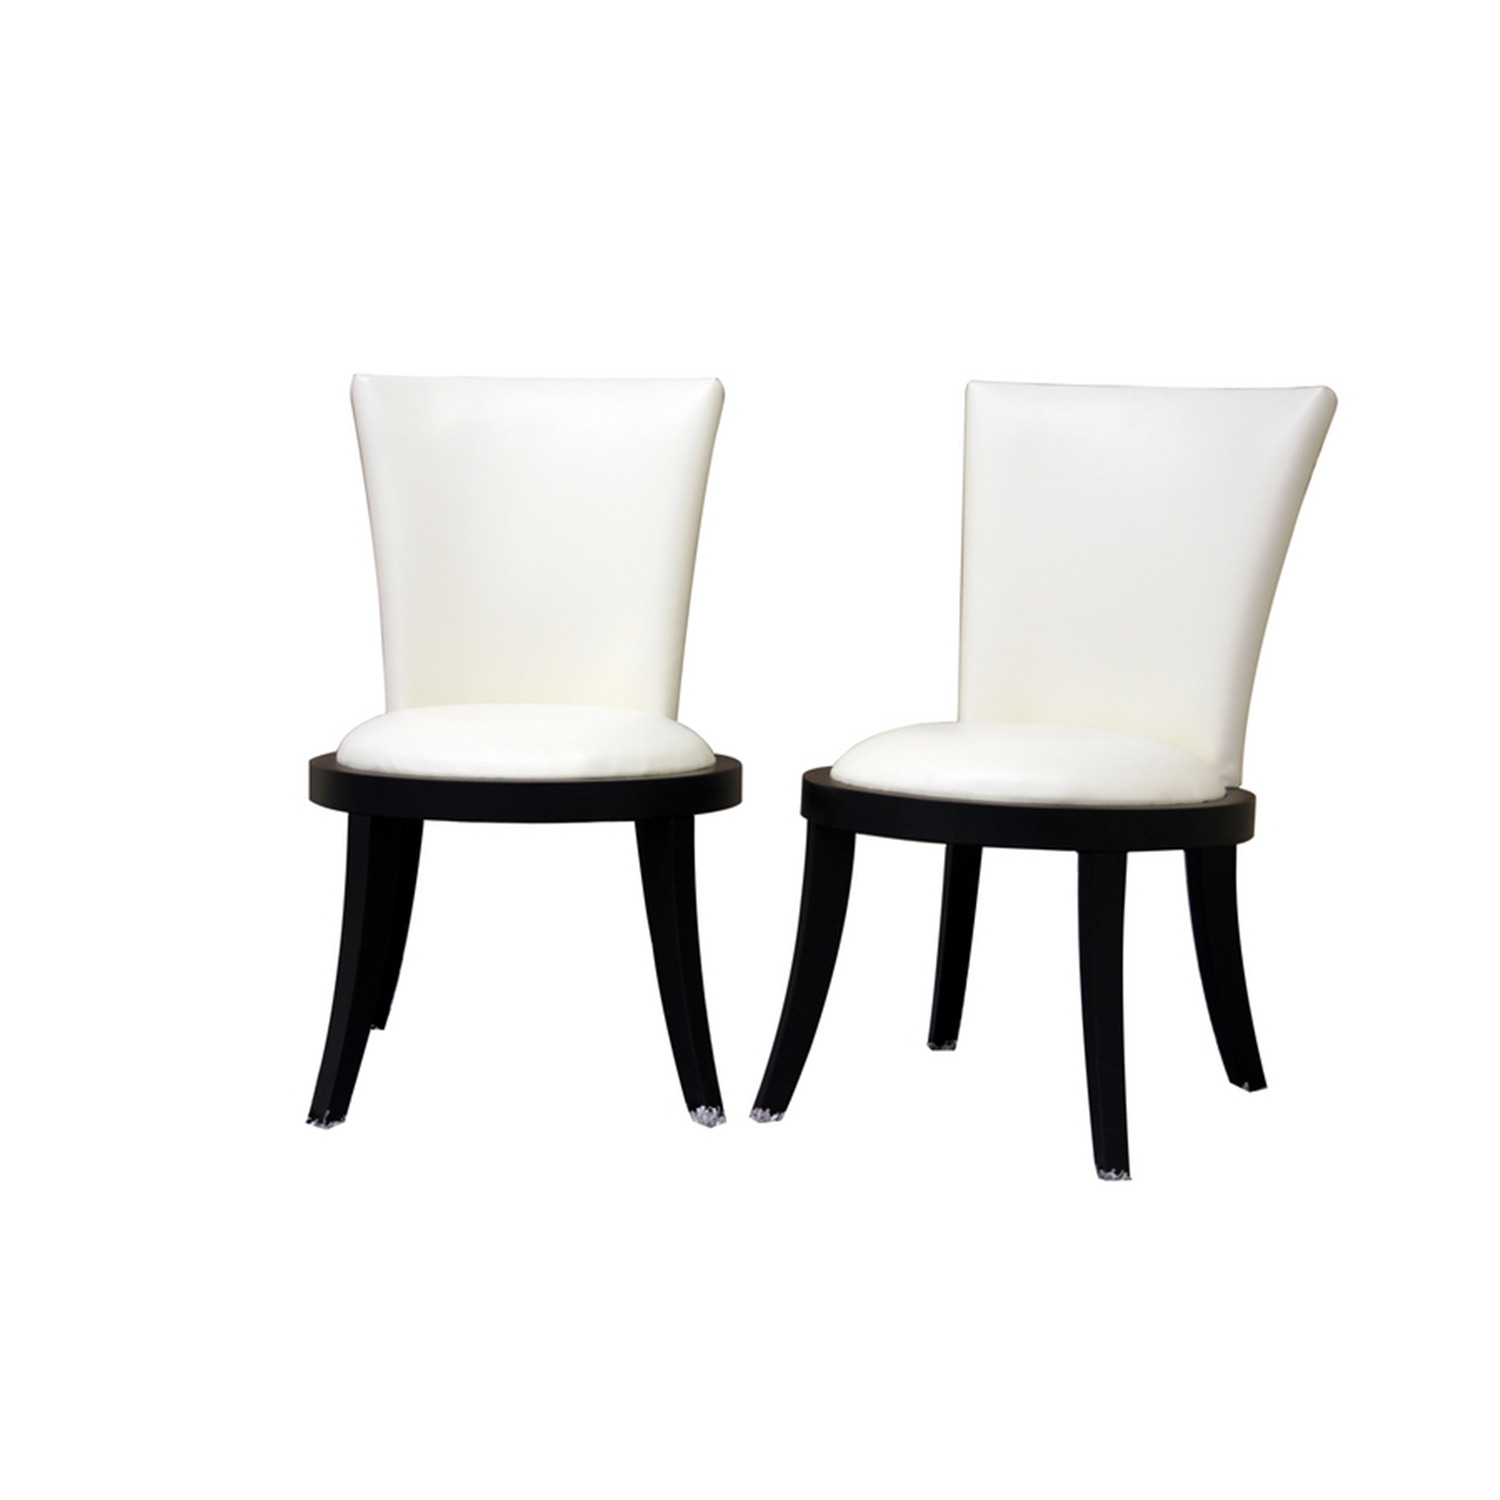 White leather dining chairs for sale furniture haslet for White dining room chairs modern